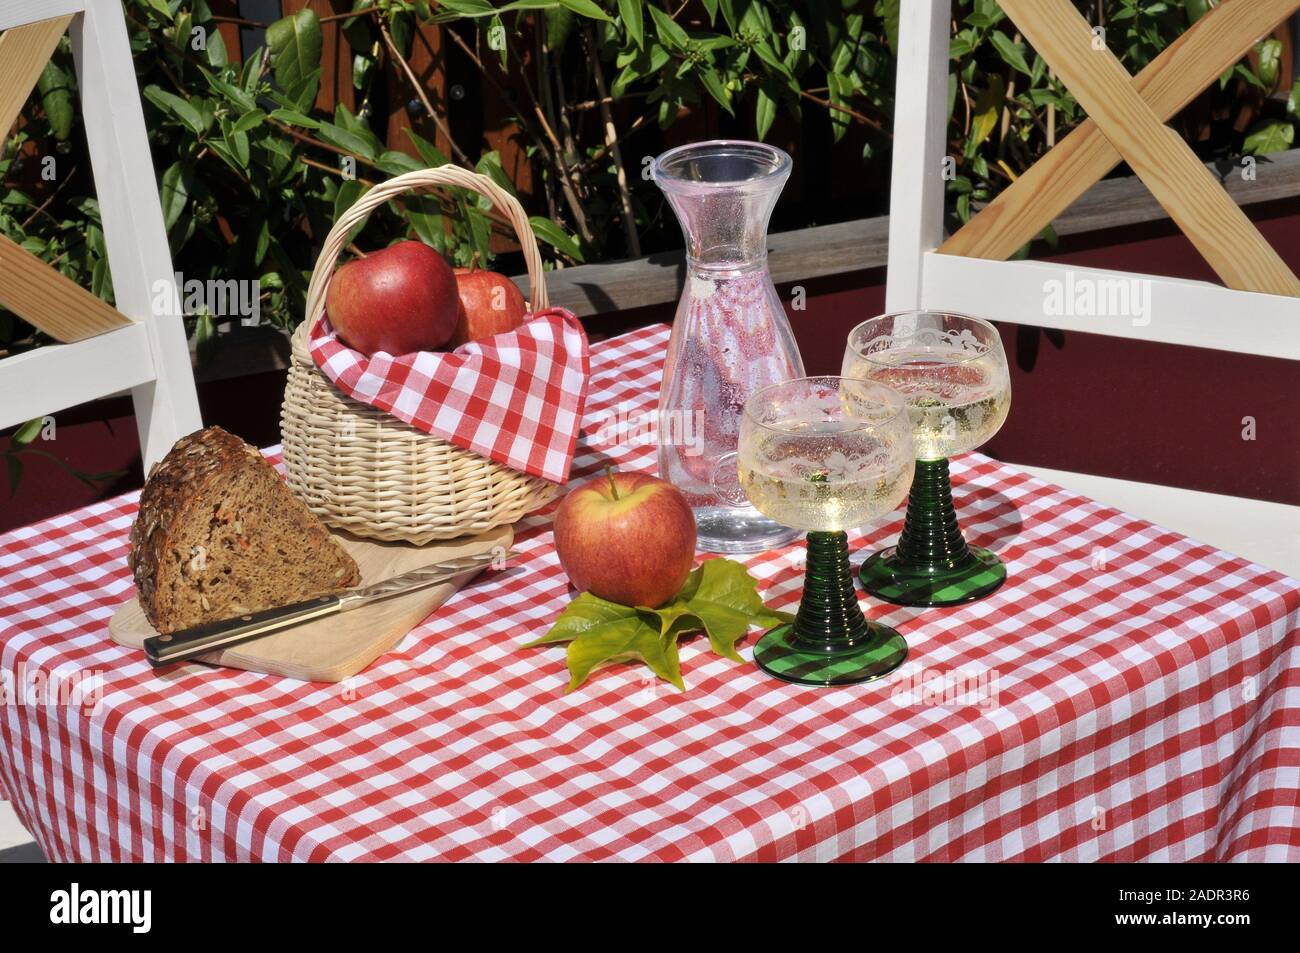 Wien, beim Heurigen, Stillife Stock Photo